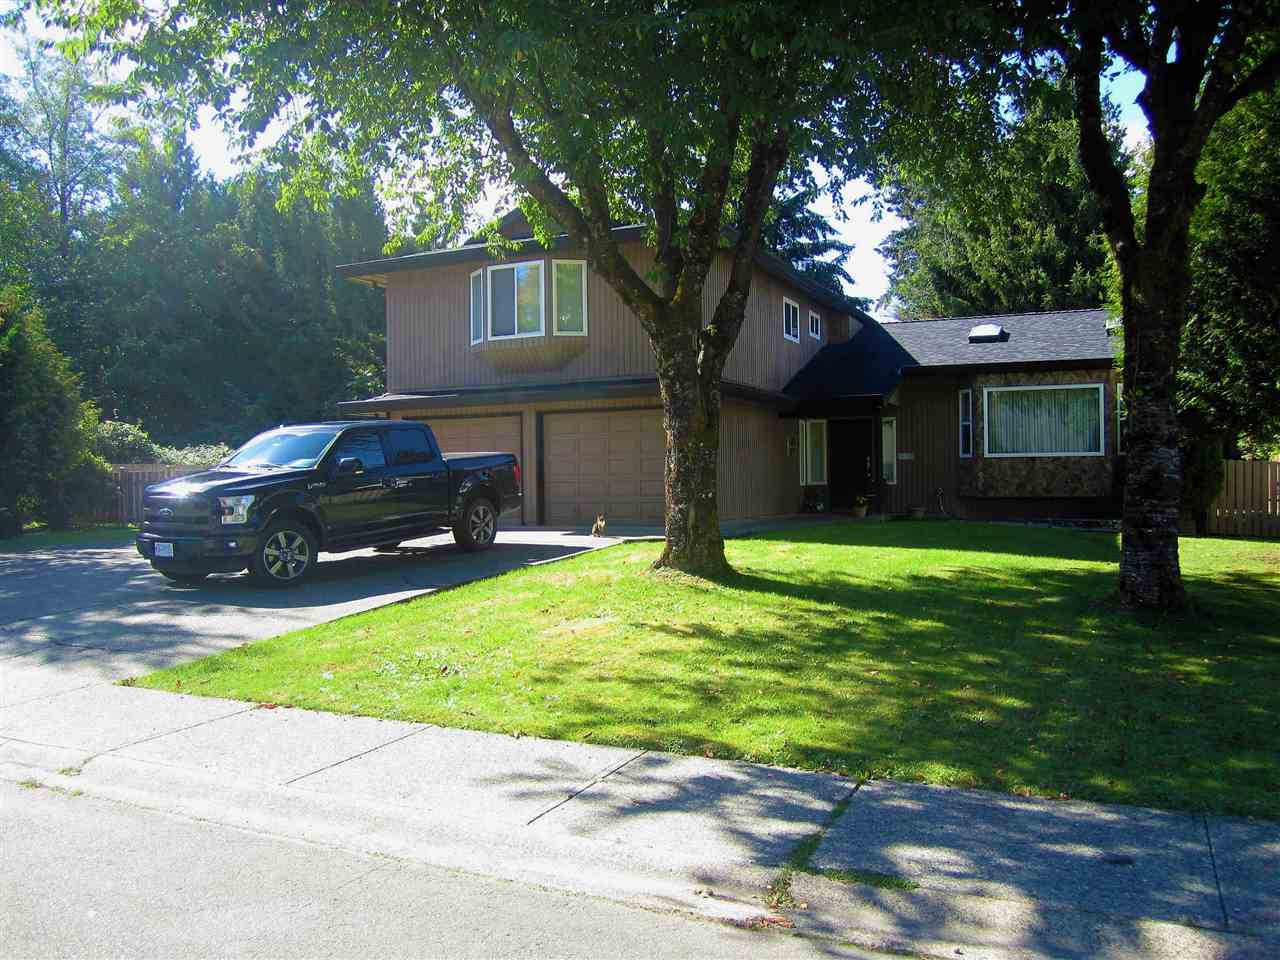 Main Photo: 9417 204A Street in Langley: Walnut Grove House for sale : MLS® # R2110673